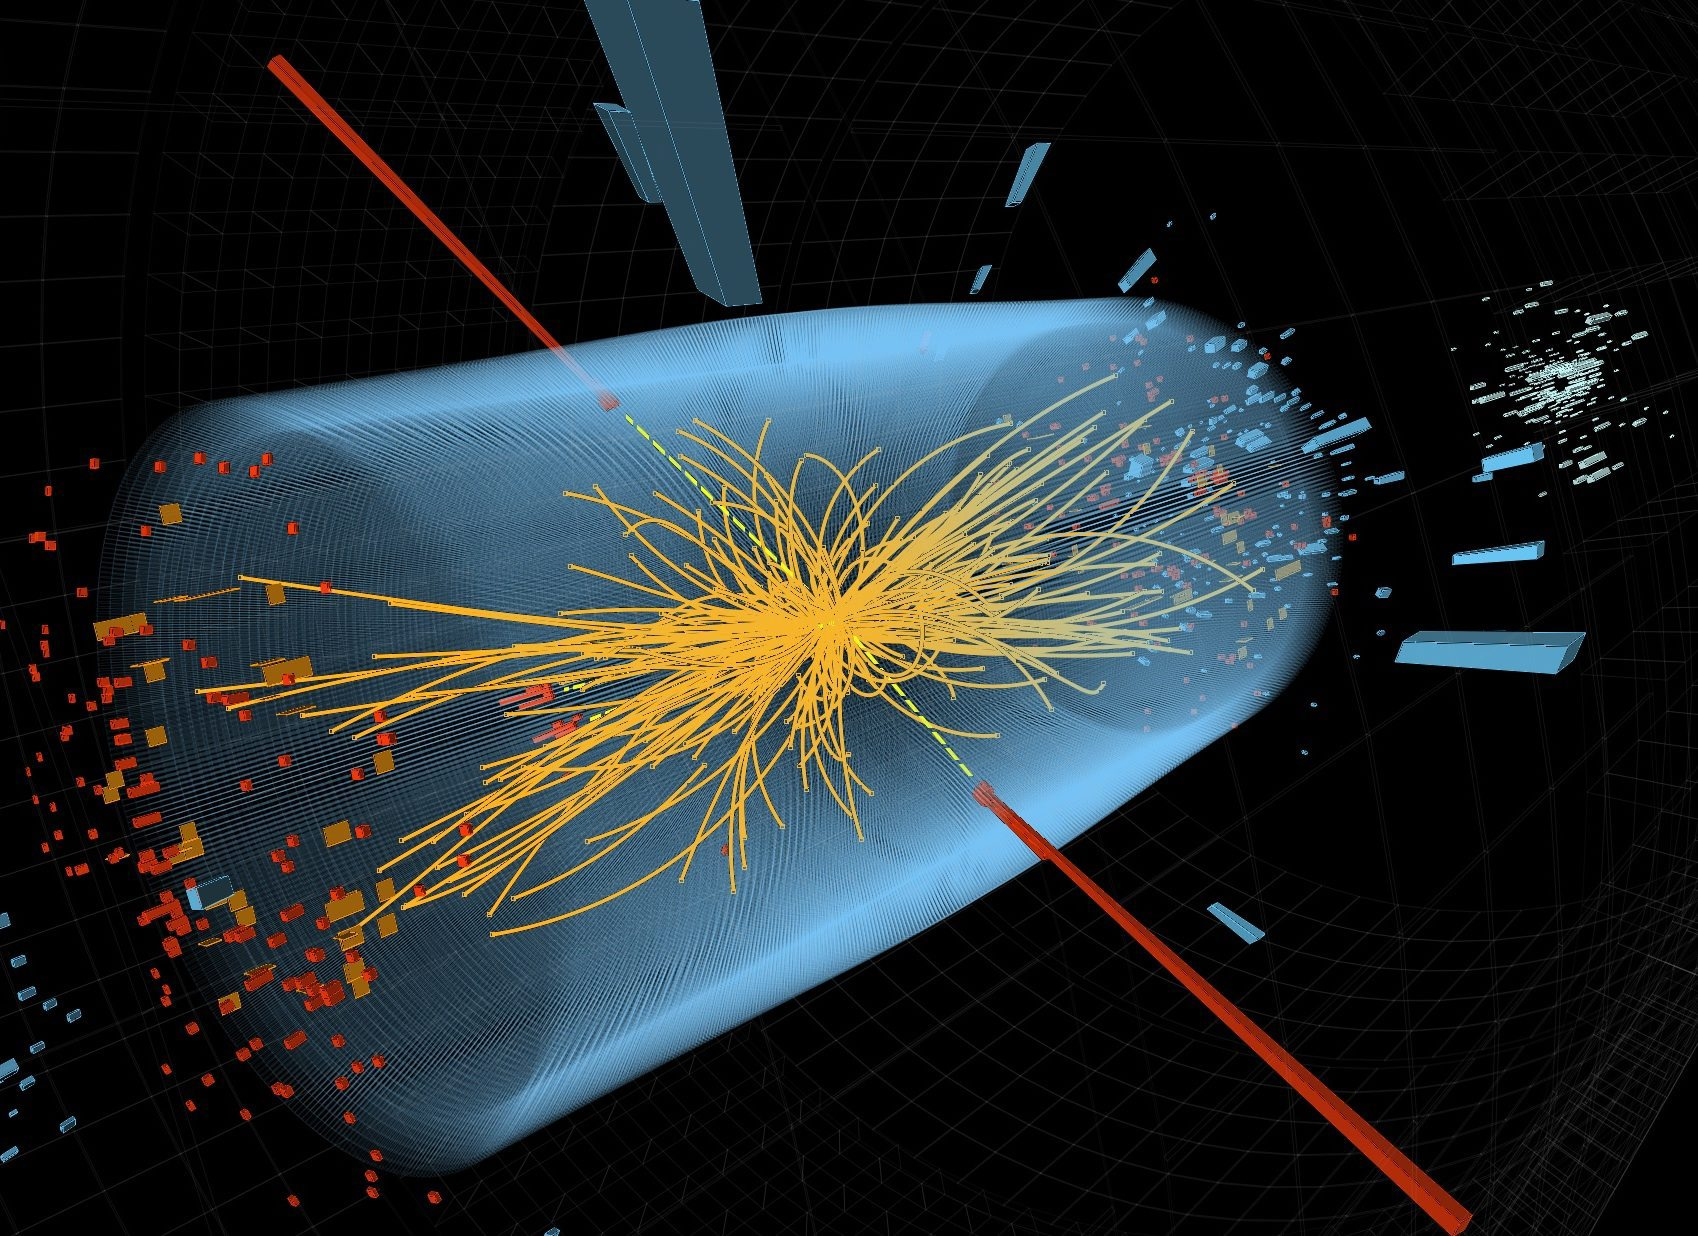 Particle found in CERN might not be famous Higgs